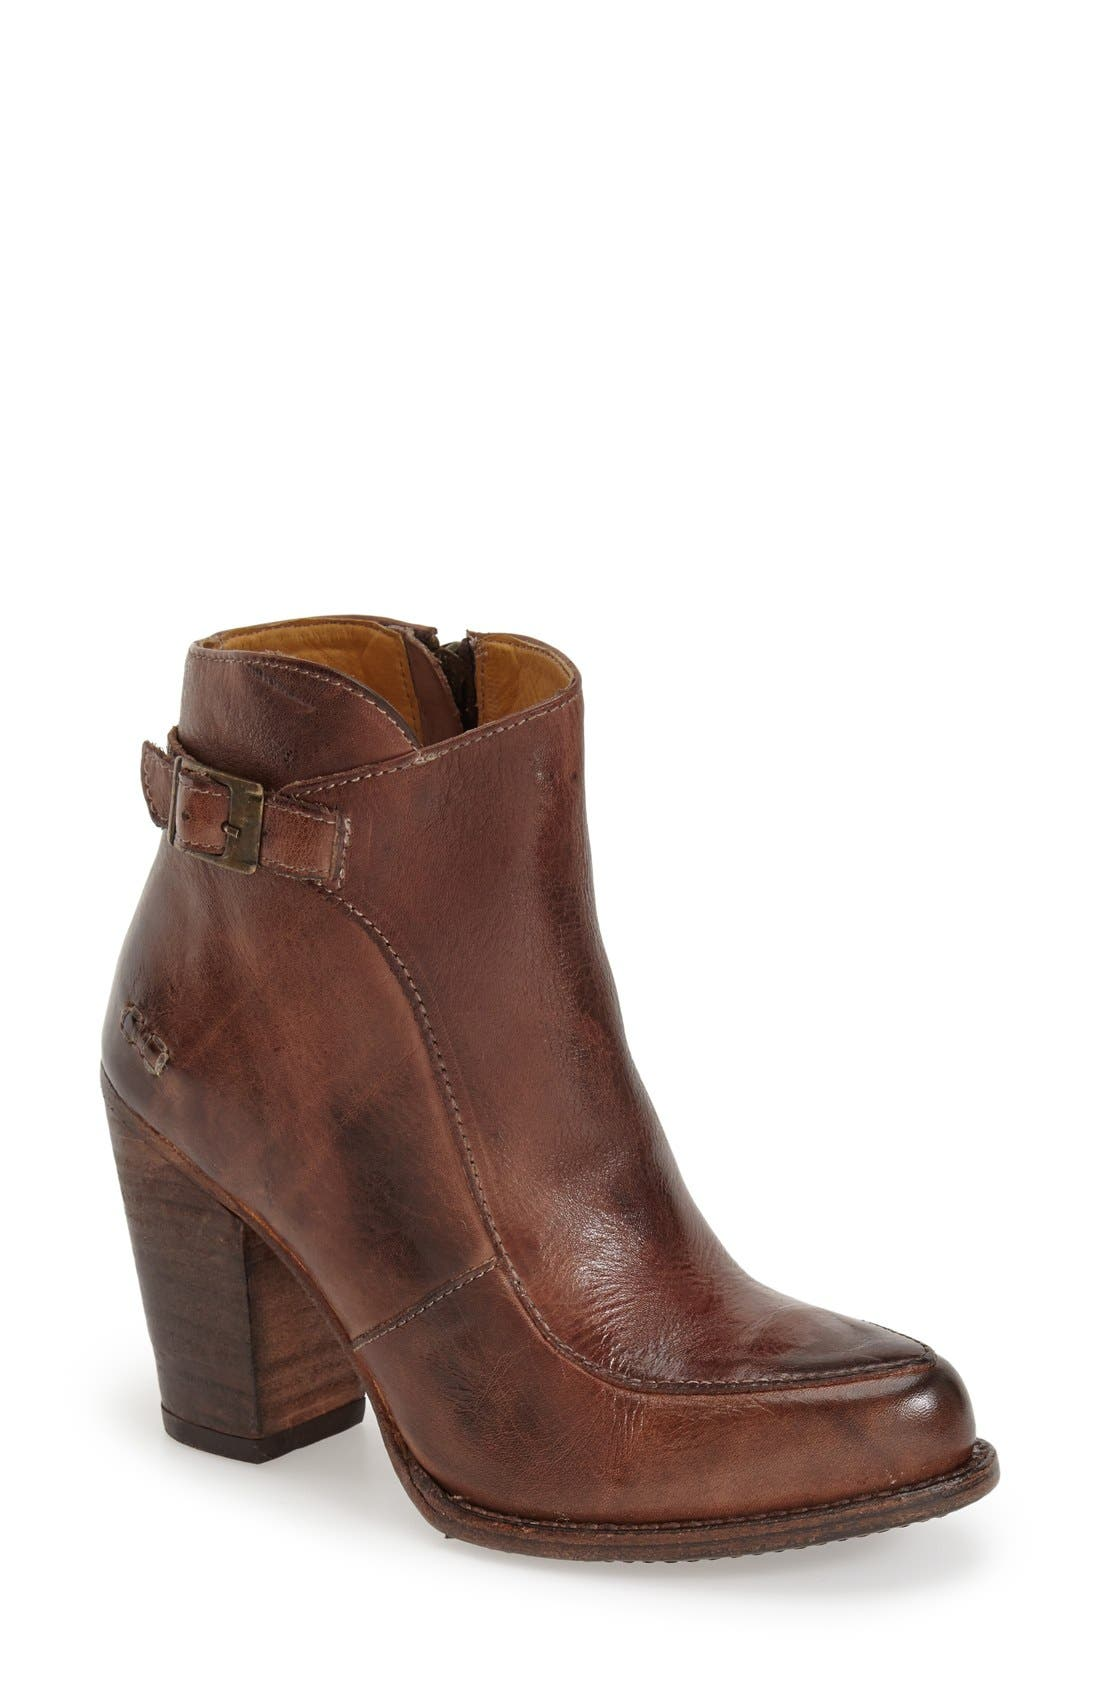 'Isla' Stacked Heel Boot,                         Main,                         color, Teak Rustic Leather